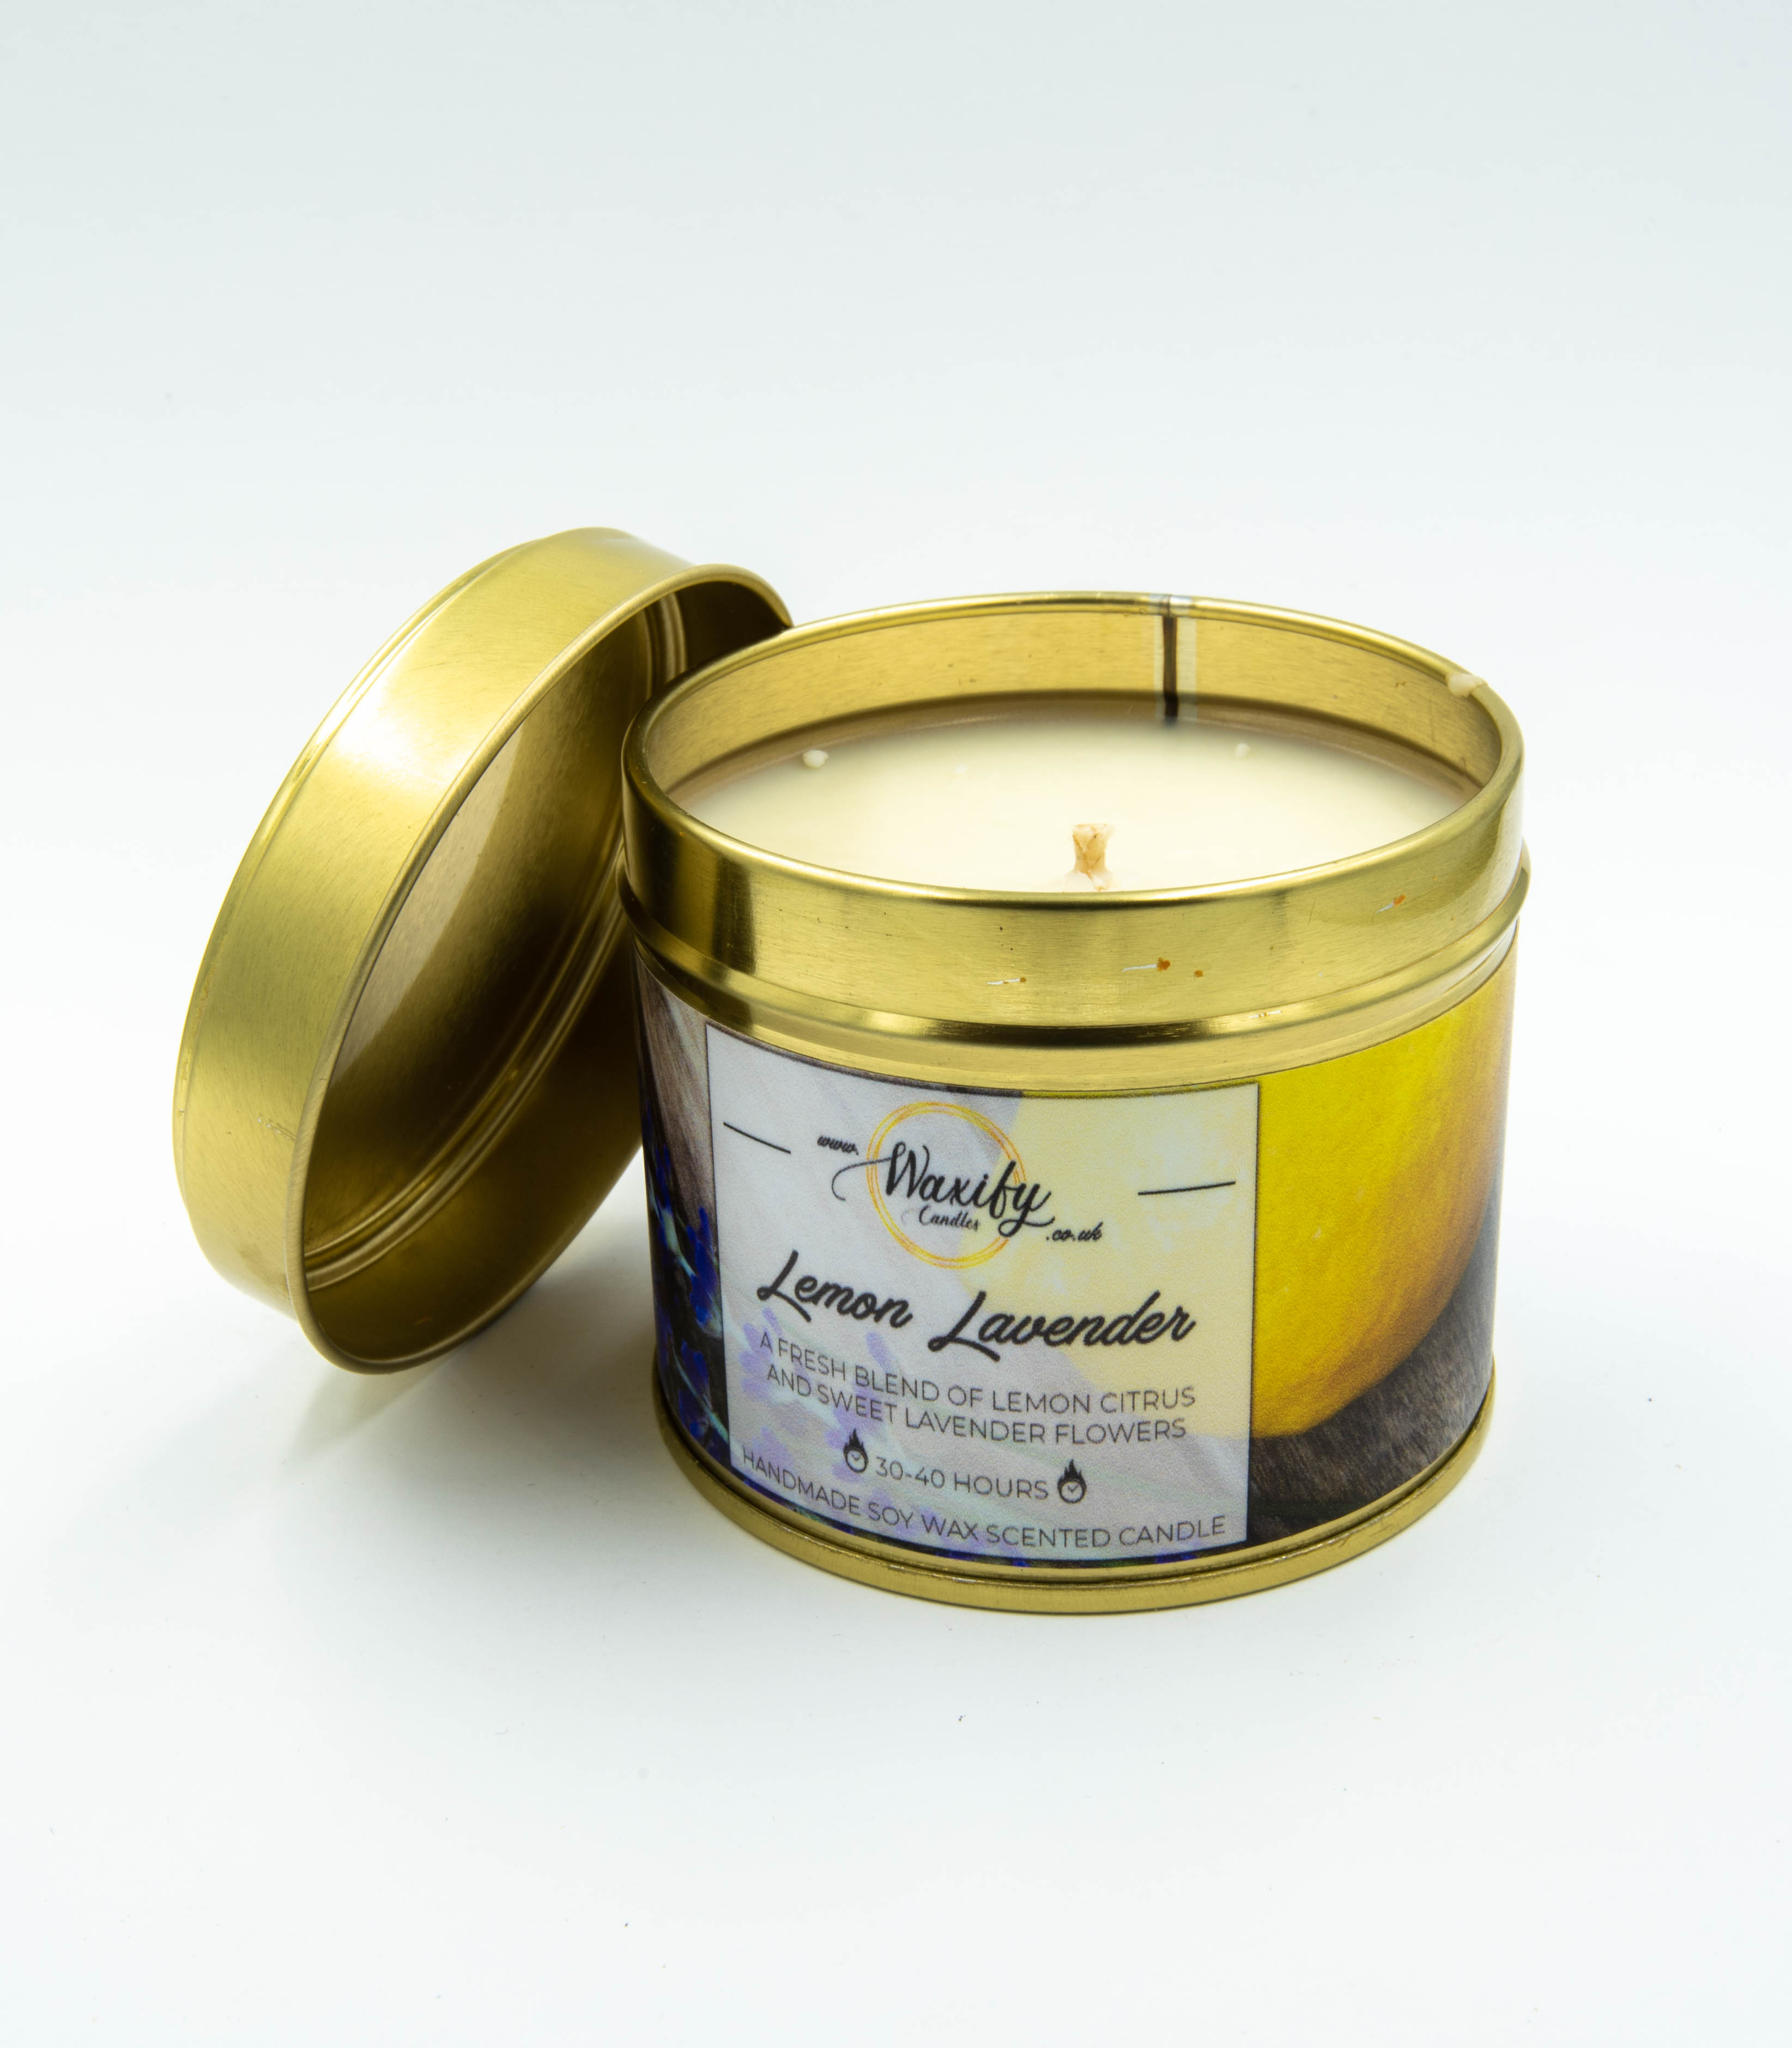 Lemon Lavender Hand Made Soy Candle